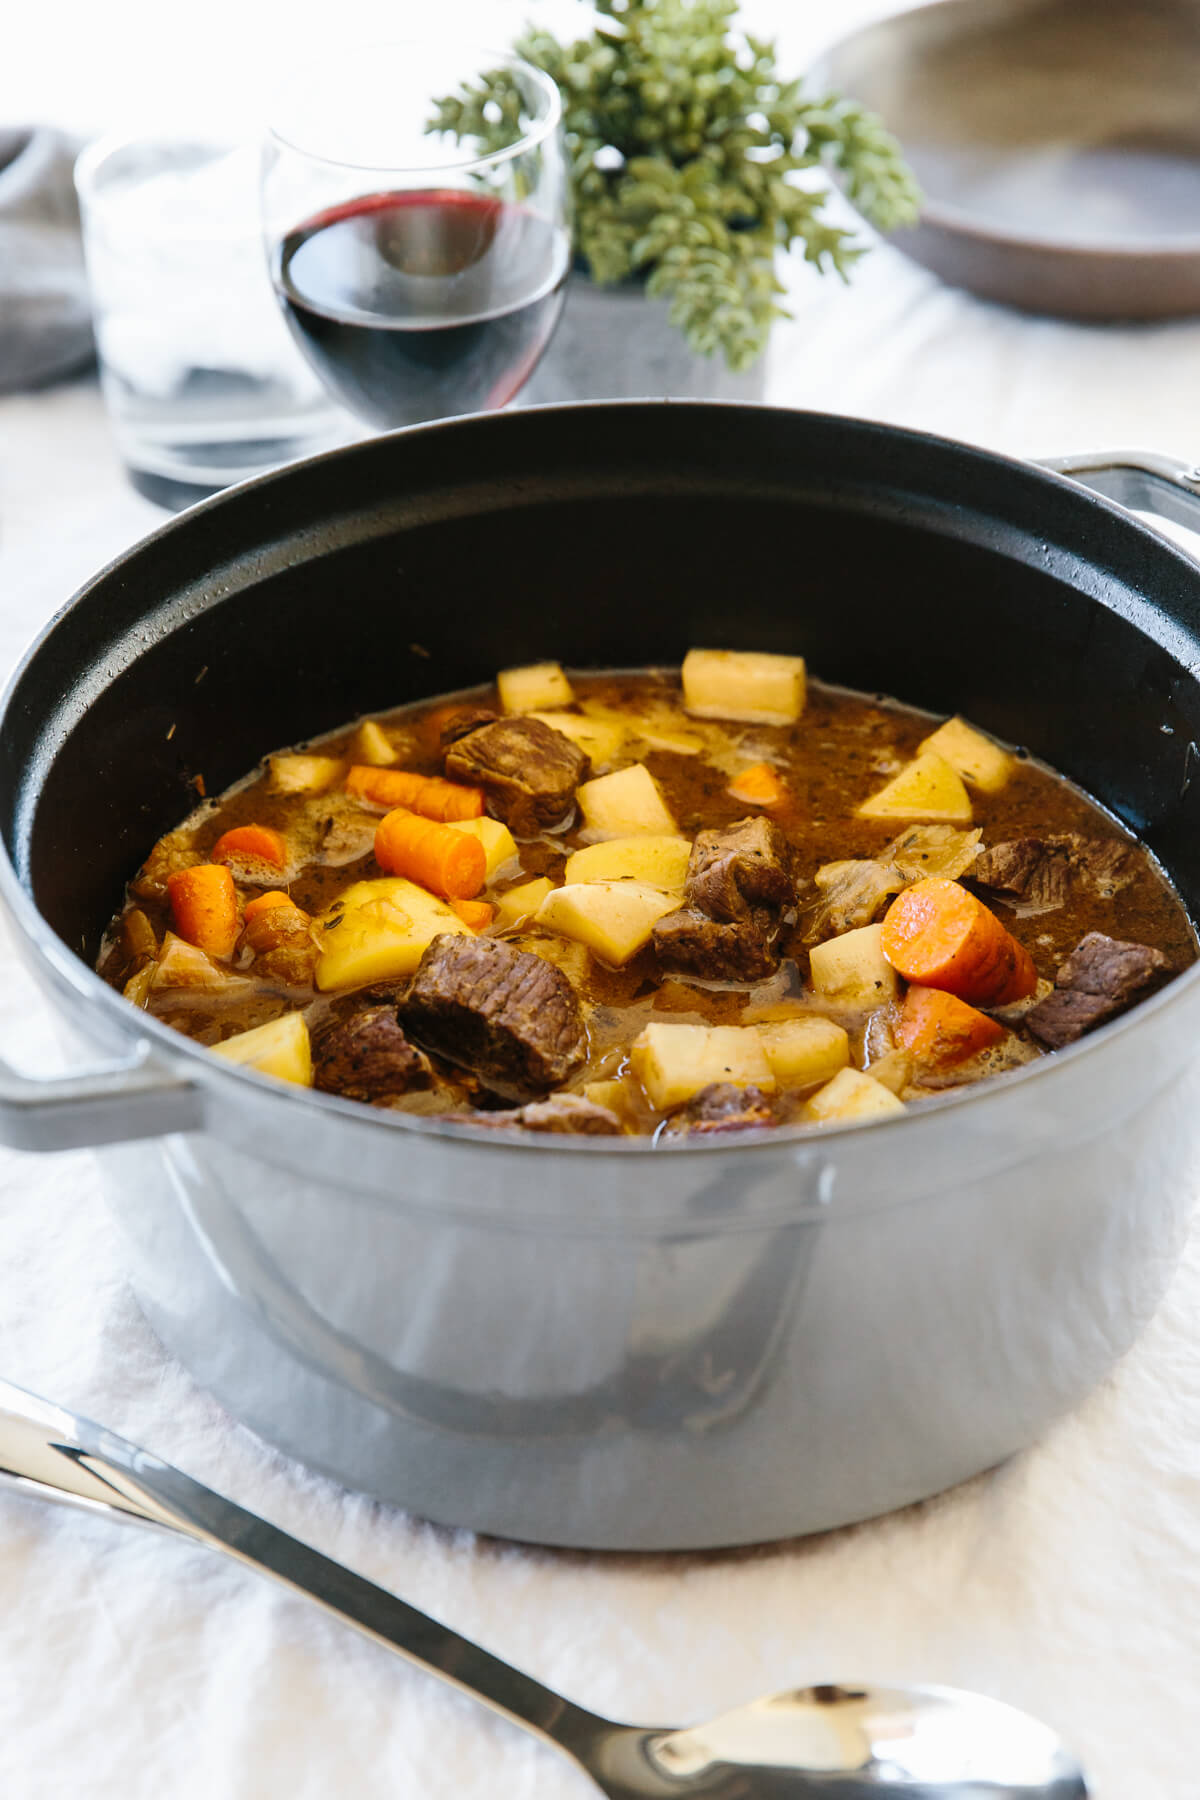 Lamb stew in a large pot.